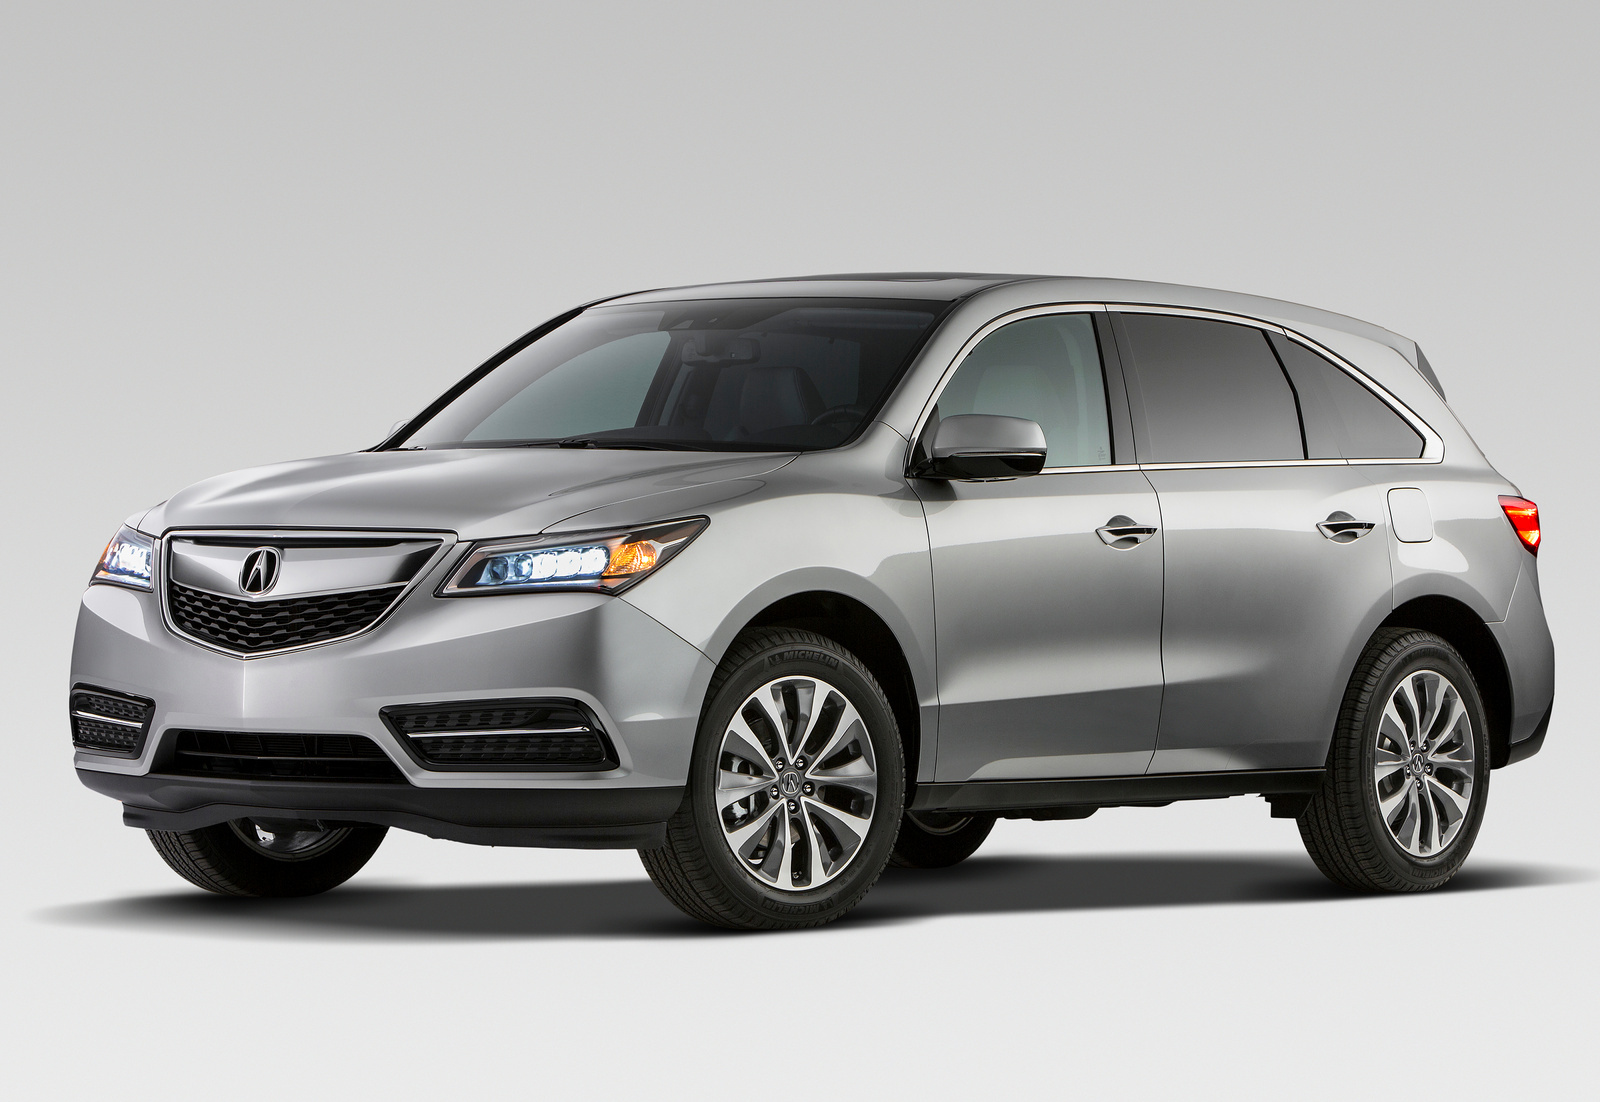 acura bbcrndg international variation all overview price aa intl mdx